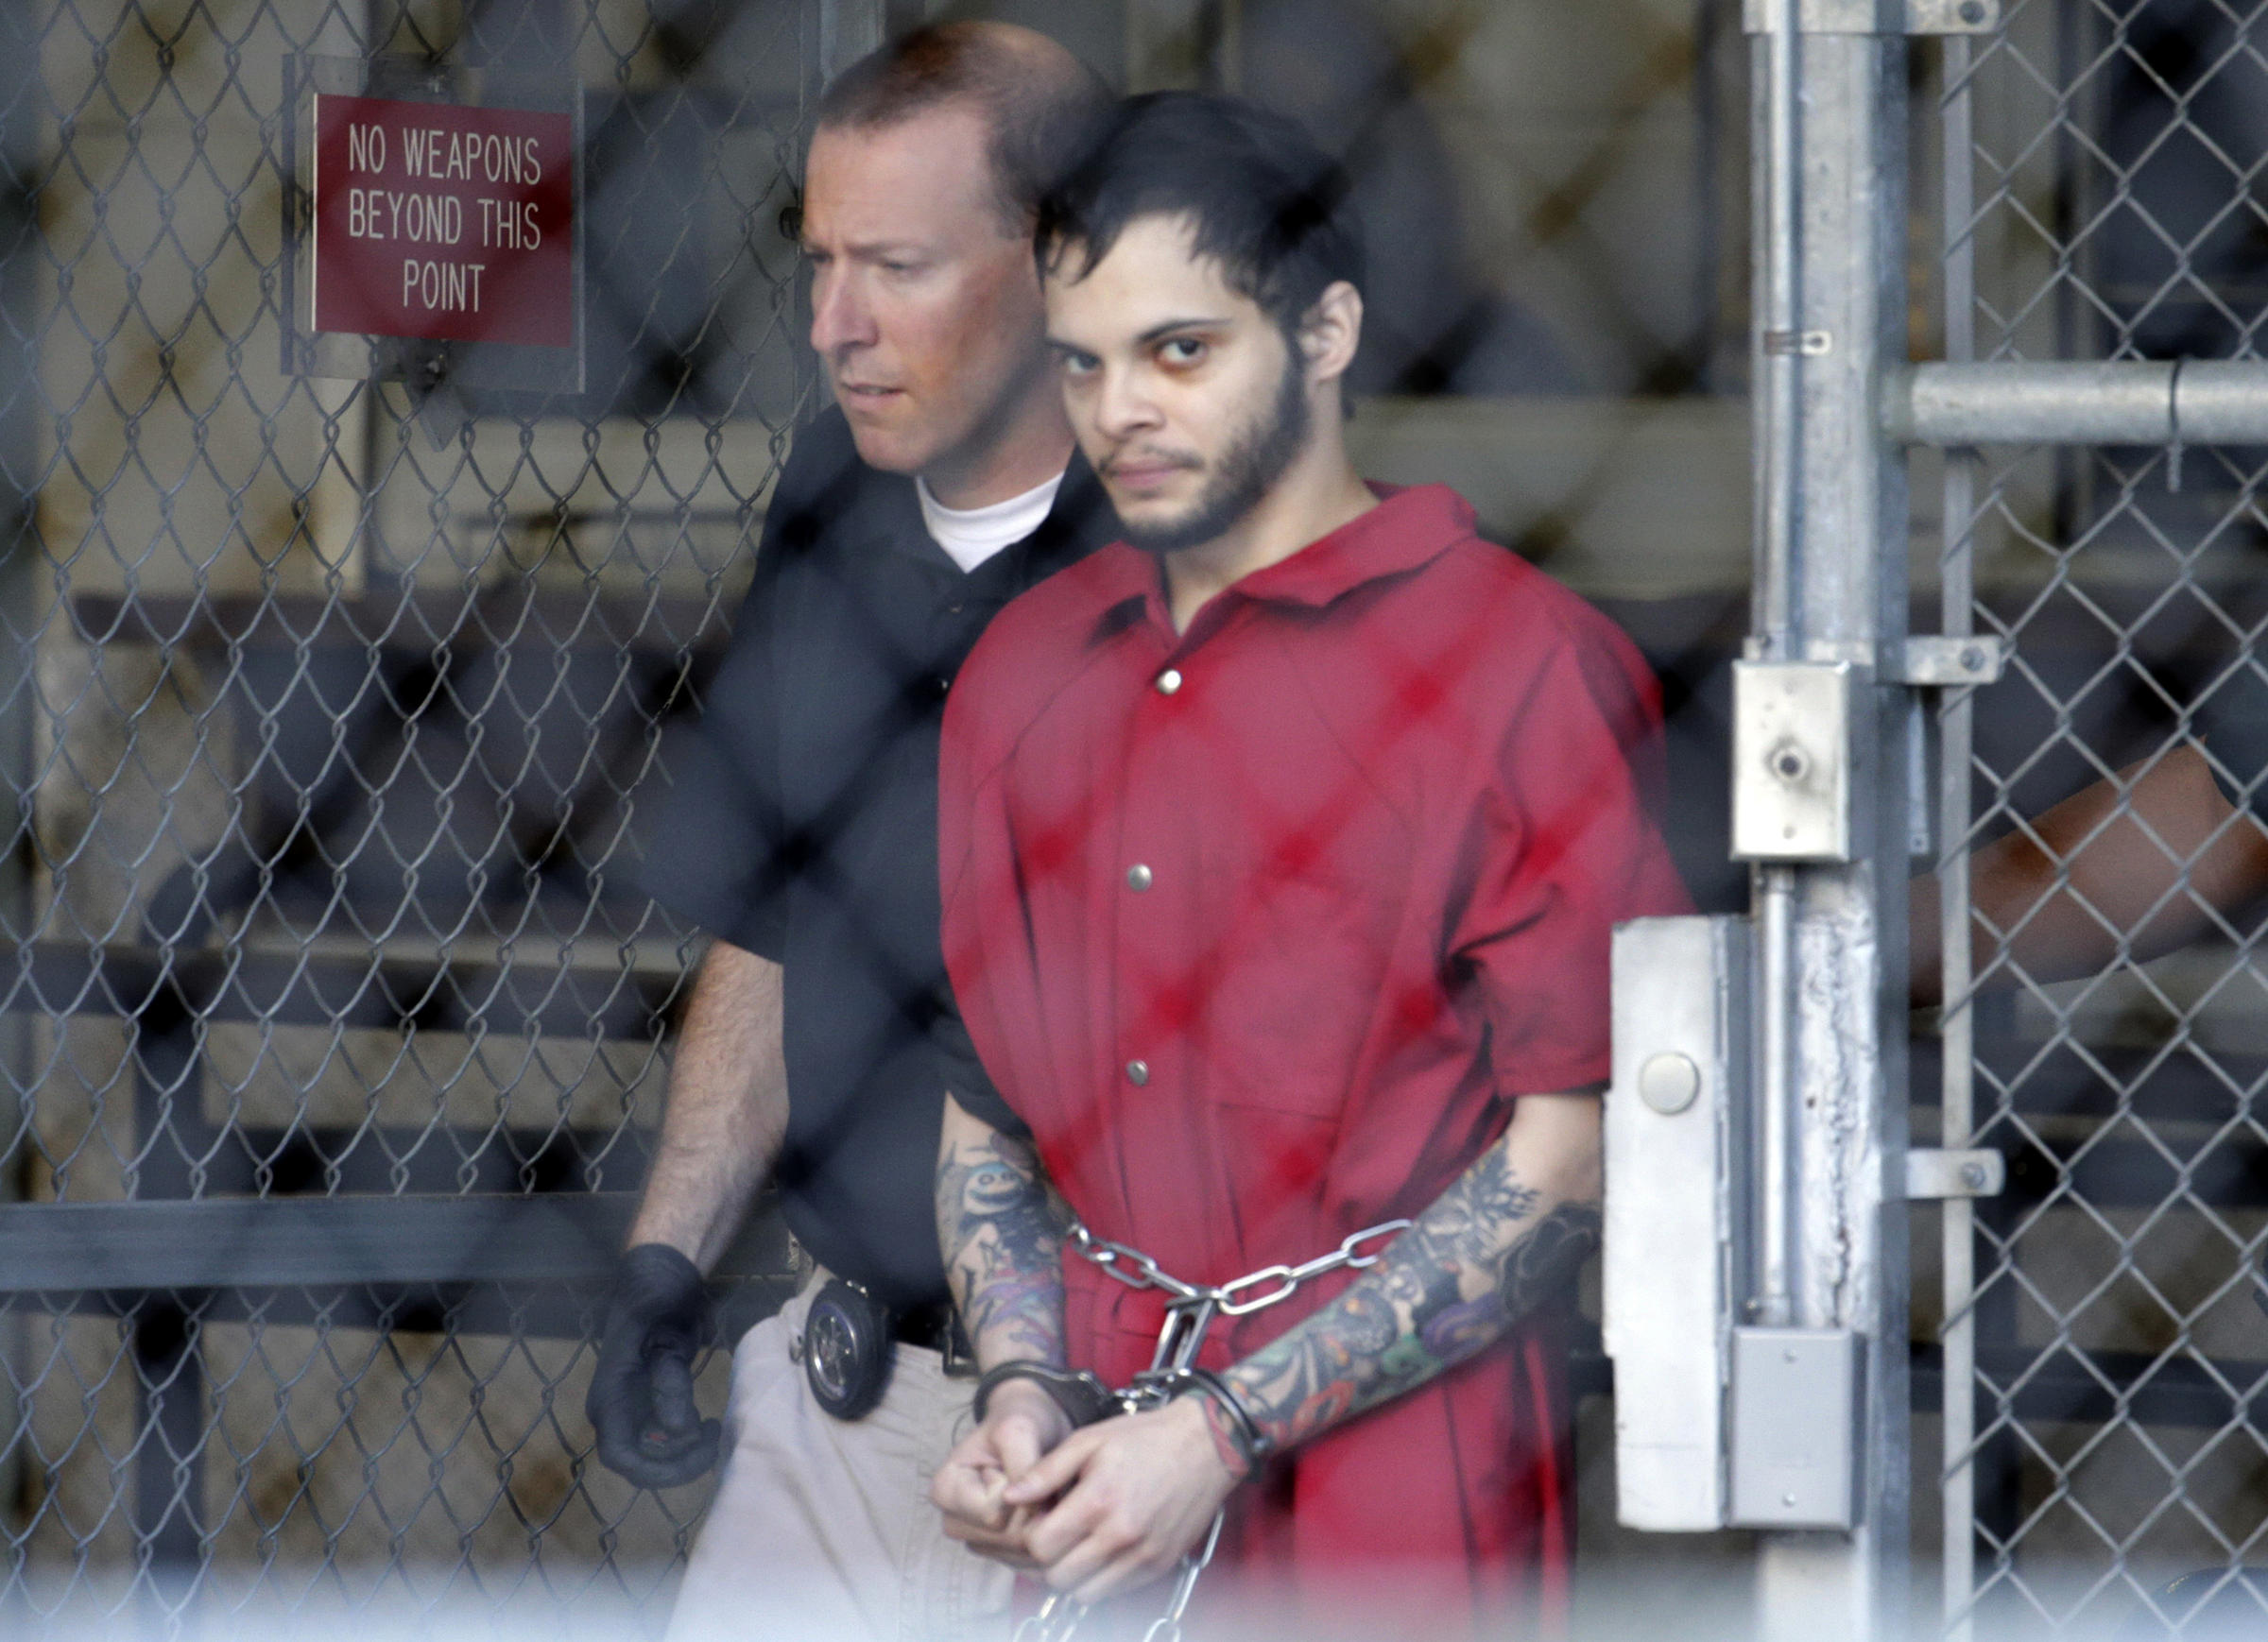 Fort Lauderdale Airport Shooter Is Sentenced To Life In Prison | WAMC